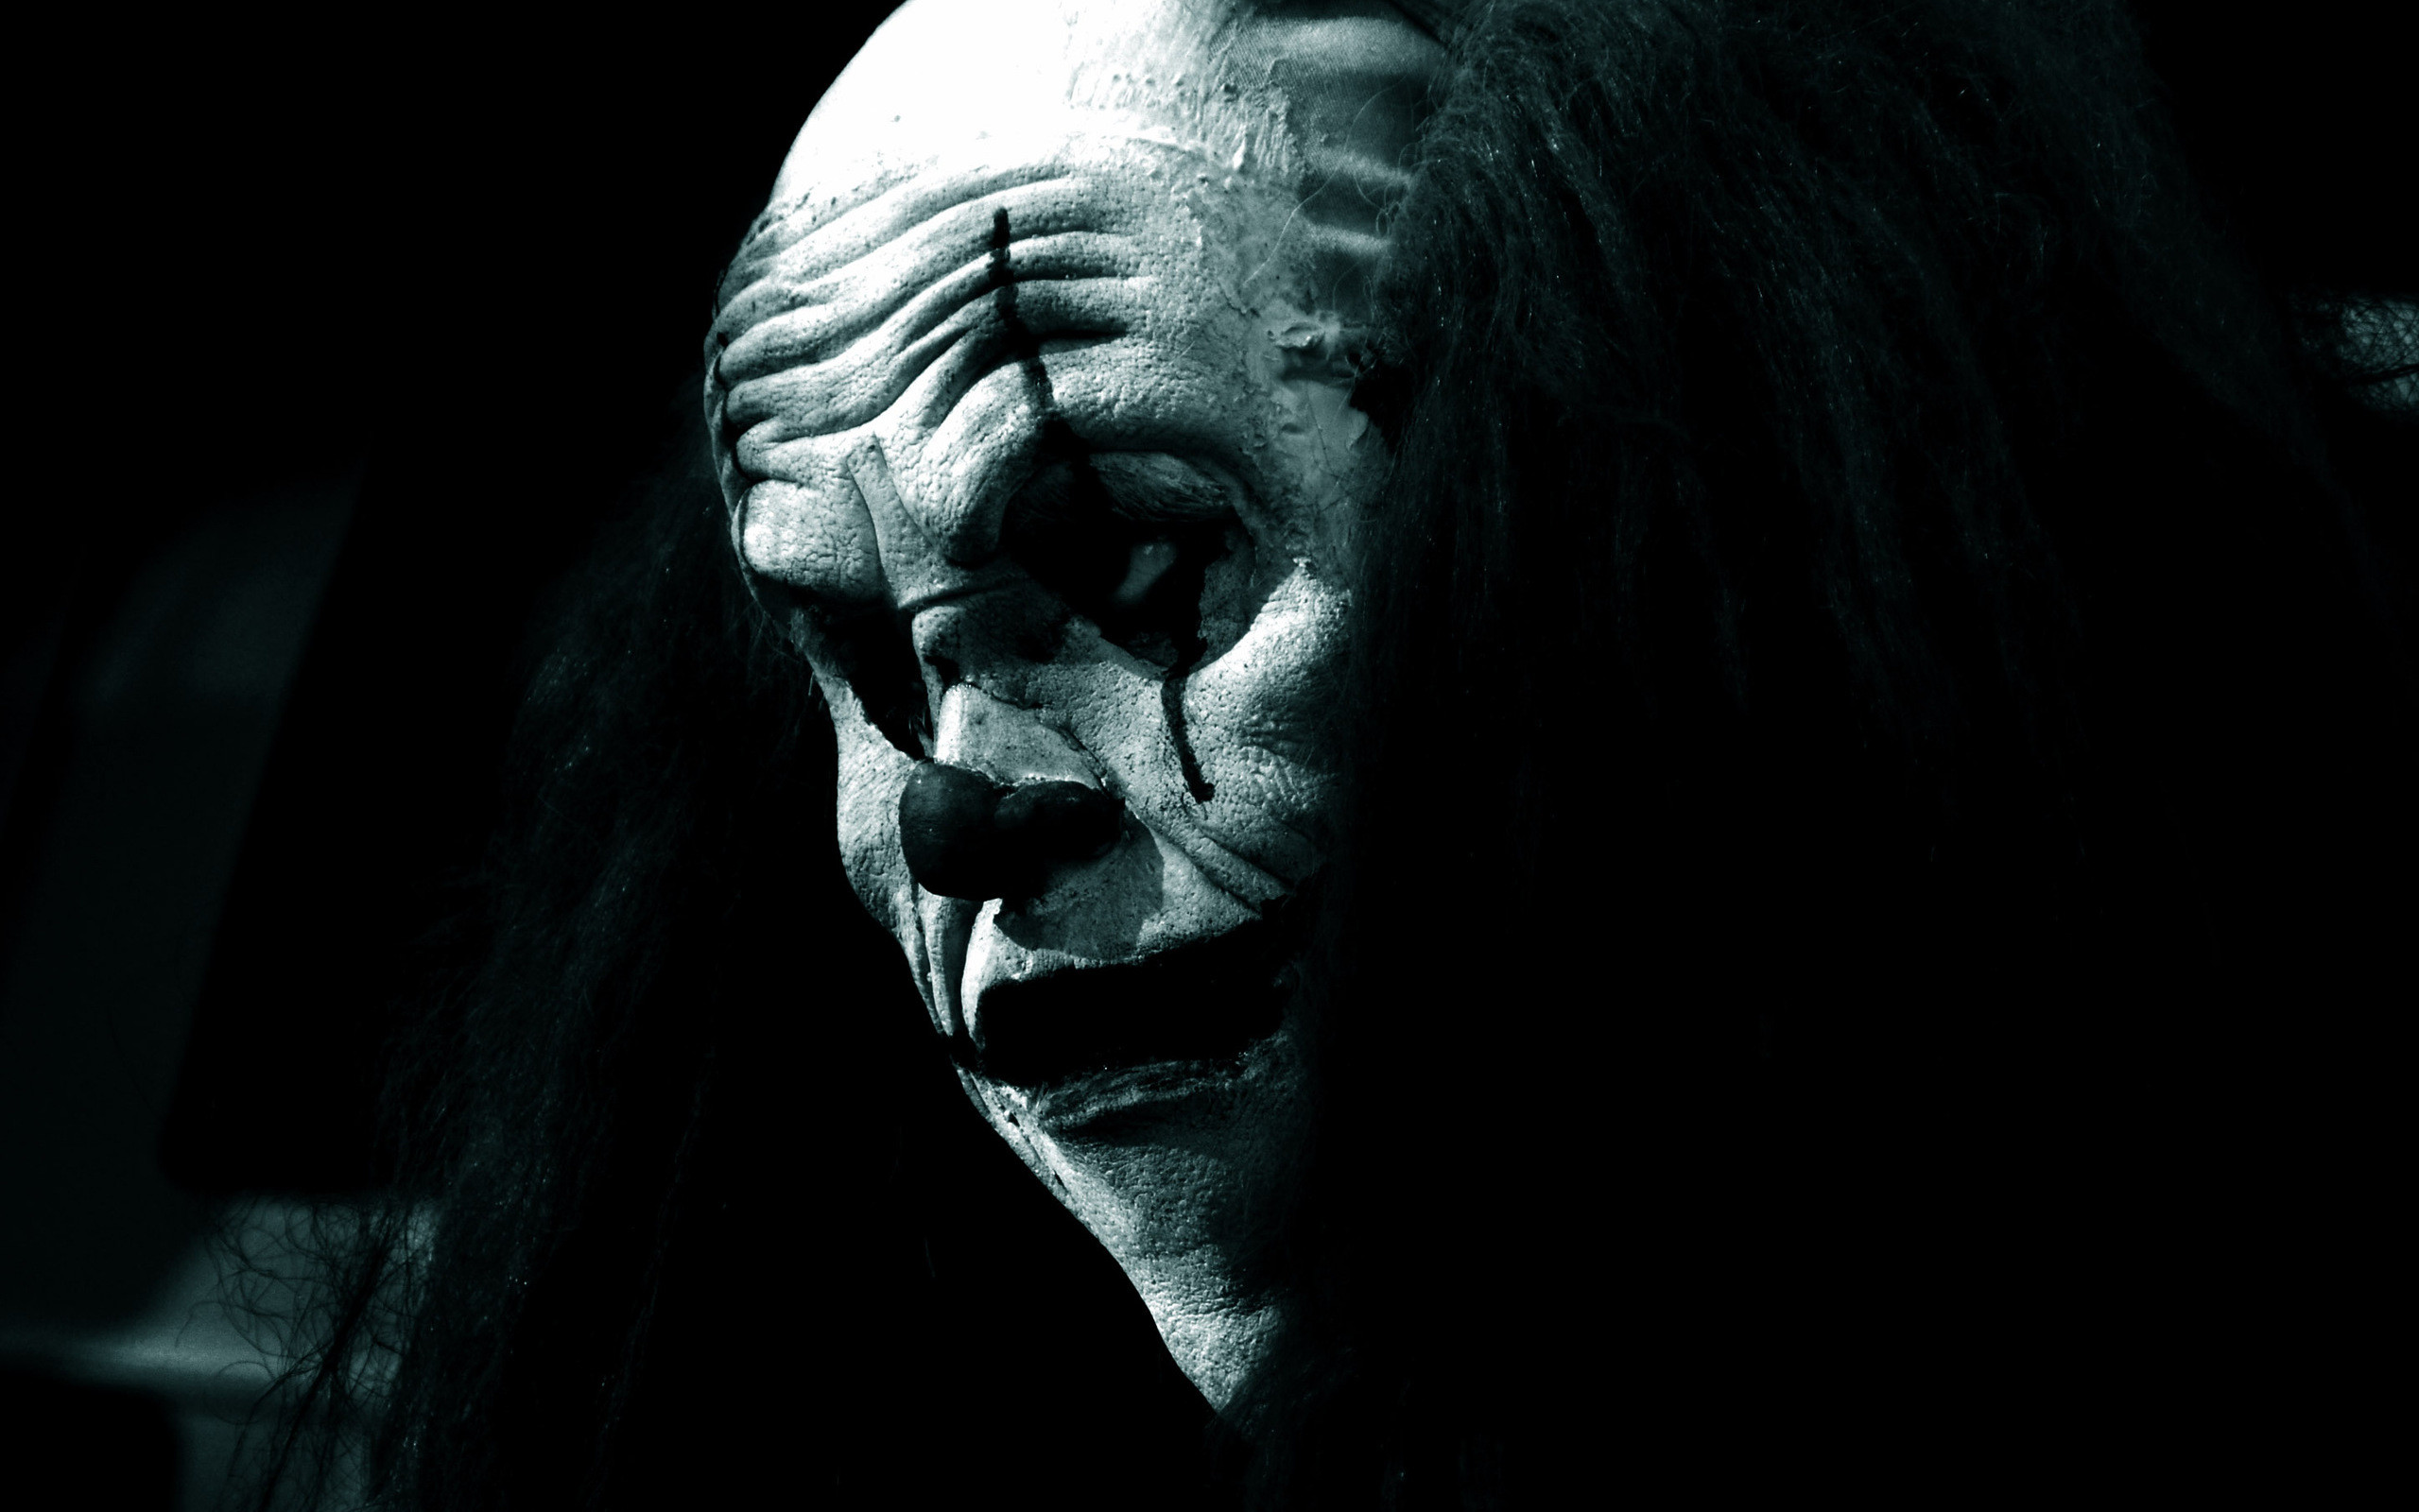 2559x1600 Scary Clown Wallpaper 2560x1600. Wallpapers 3d für Desktop, 3D-Bilder